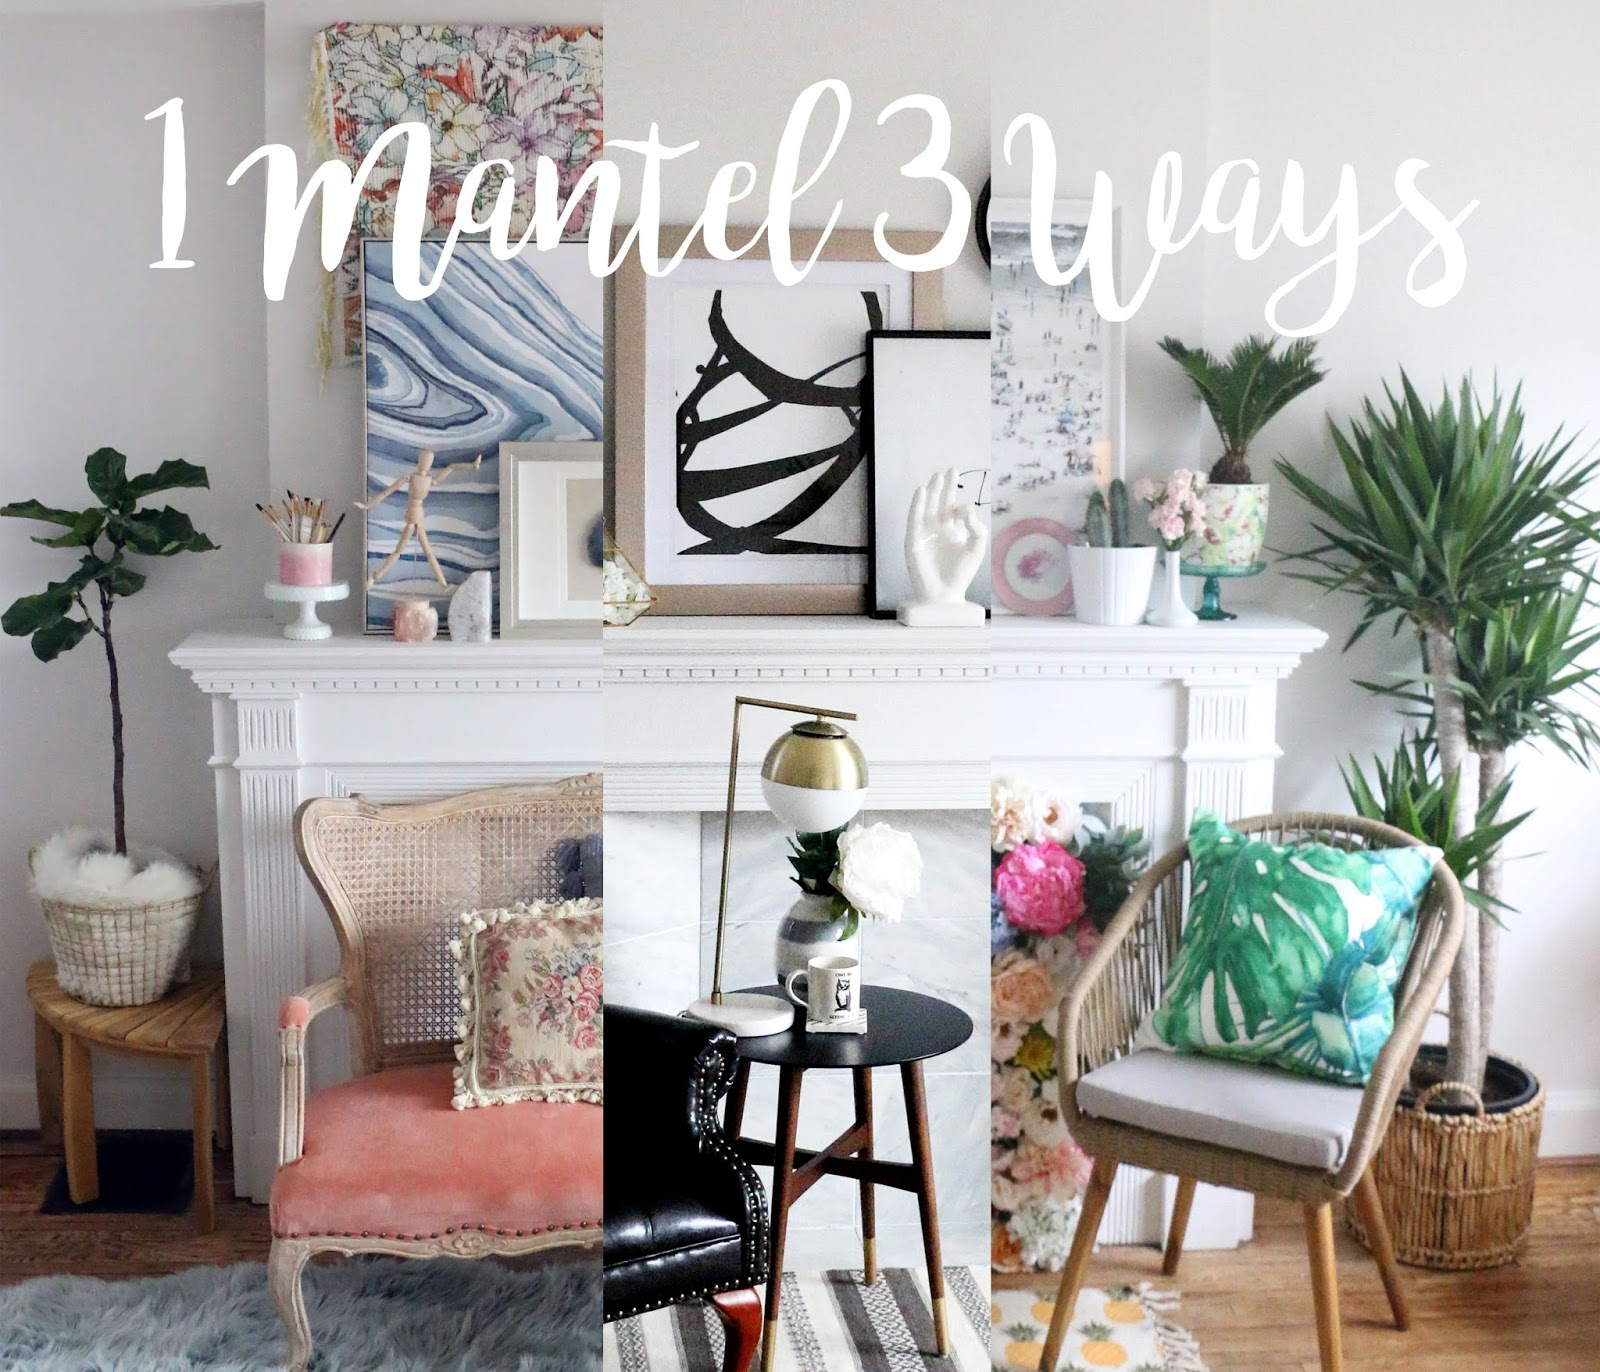 1 Mantle 3 Ways with HomeSense - THE PARTY PARADE